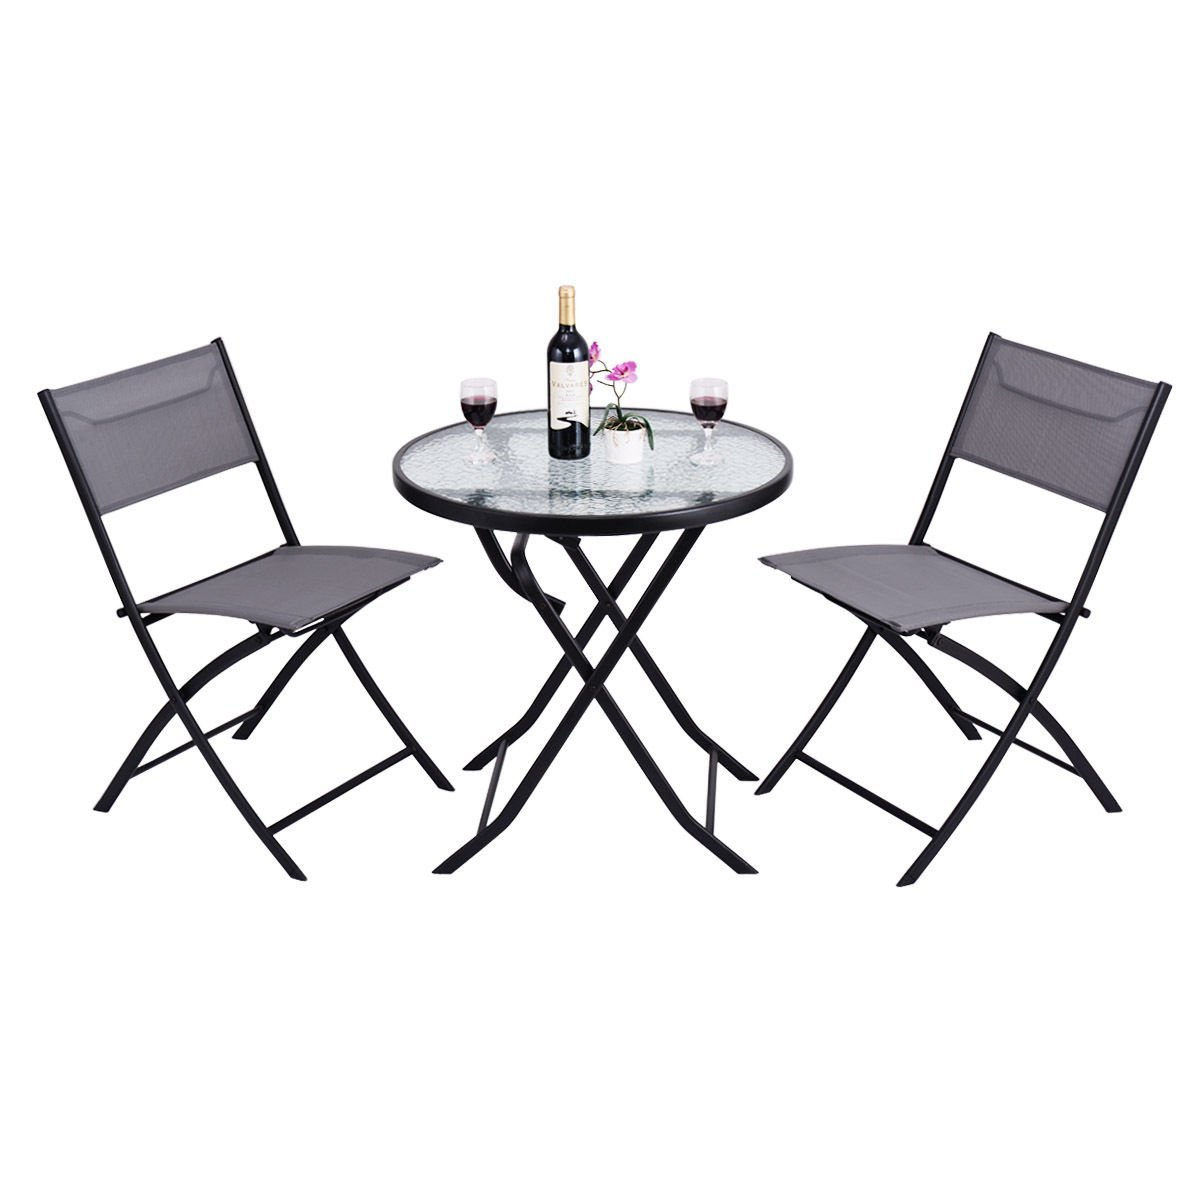 Heaven Tvcz 3 Piece Blue Folding Table Chair Set Metal Tempered Glass Outdoor Patio Garden Pool Perfect for outdoor use such as patio, garden or pool